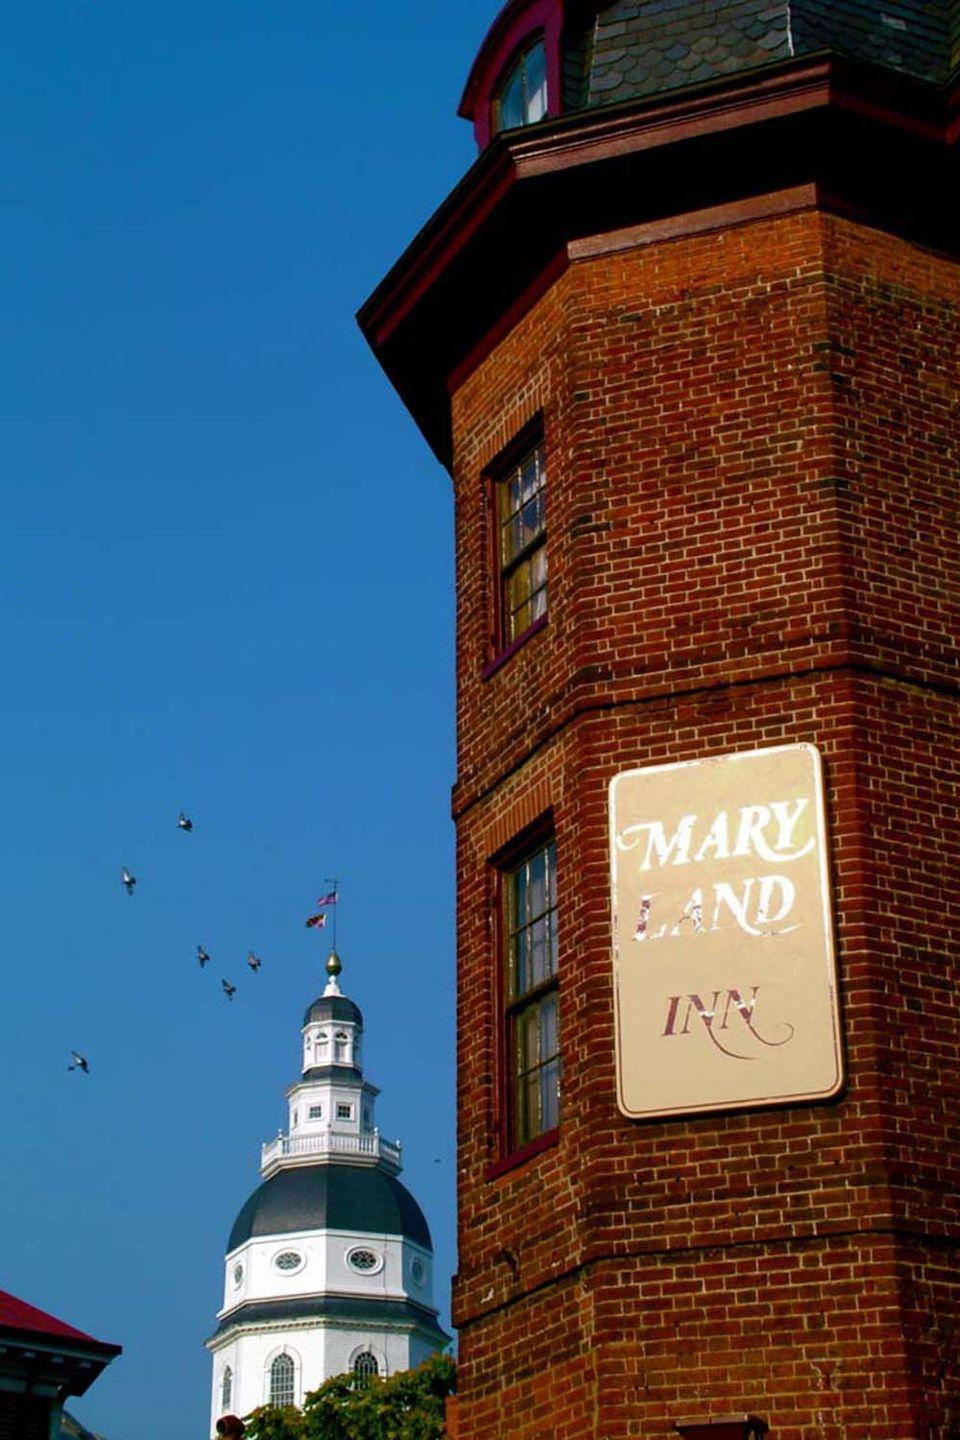 "<p>Located right on Main Street in charming <span class=""redactor-unlink"">downtown Annapolis</span>, this red-brick inn has been a central meeting place for national, state, and military visitors throughout its history. Its restaurant, the Treaty of Paris, honors the agreement that ended America's Revolutionary War in 1784.<br></p><p><strong>EXPLORE NOW: </strong><a href=""https://www.tripadvisor.com/Hotel_Review-s1-g29494-d89317-Reviews-Historic_Inns_of_Annapolis-Annapolis_Maryland.html"" rel=""nofollow noopener"" target=""_blank"" data-ylk=""slk:The Maryland Inn"" class=""link rapid-noclick-resp"">The Maryland Inn</a></p><p><em>Image via <a href=""https://www.flickr.com/photos/katmere/44195863/in/photolist-8uBttw-6vteJa-5VAWeX-3y7Vfh-nFsi3c-adi4E-adi3n-adibw-8X7zuP-adid2-e4fYVi-adi9N-4UvTD-9xdvht-5VAWdn-5VFgUL-6ccohL-6FX9XU-6FX9eS-5dbYV7-adi89-5d7Dt8-6FXa5h-6FX9jU-6FX9hG-5d7DcD-5d7E1k-6FX9iS-5dbYRL-5d7Dx2-5d7D2P-5dbZ3Q-5dbXD1-5dbZ7C-5dbYFW-5d7DAa-5d7Dha-HZdLFy-HZf5Dp-5dbY6W/"" rel=""nofollow noopener"" target=""_blank"" data-ylk=""slk:KATE MEREAND-SINHA"" class=""link rapid-noclick-resp"">KATE MEREAND-SINHA</a>/Flickr</em></p>"